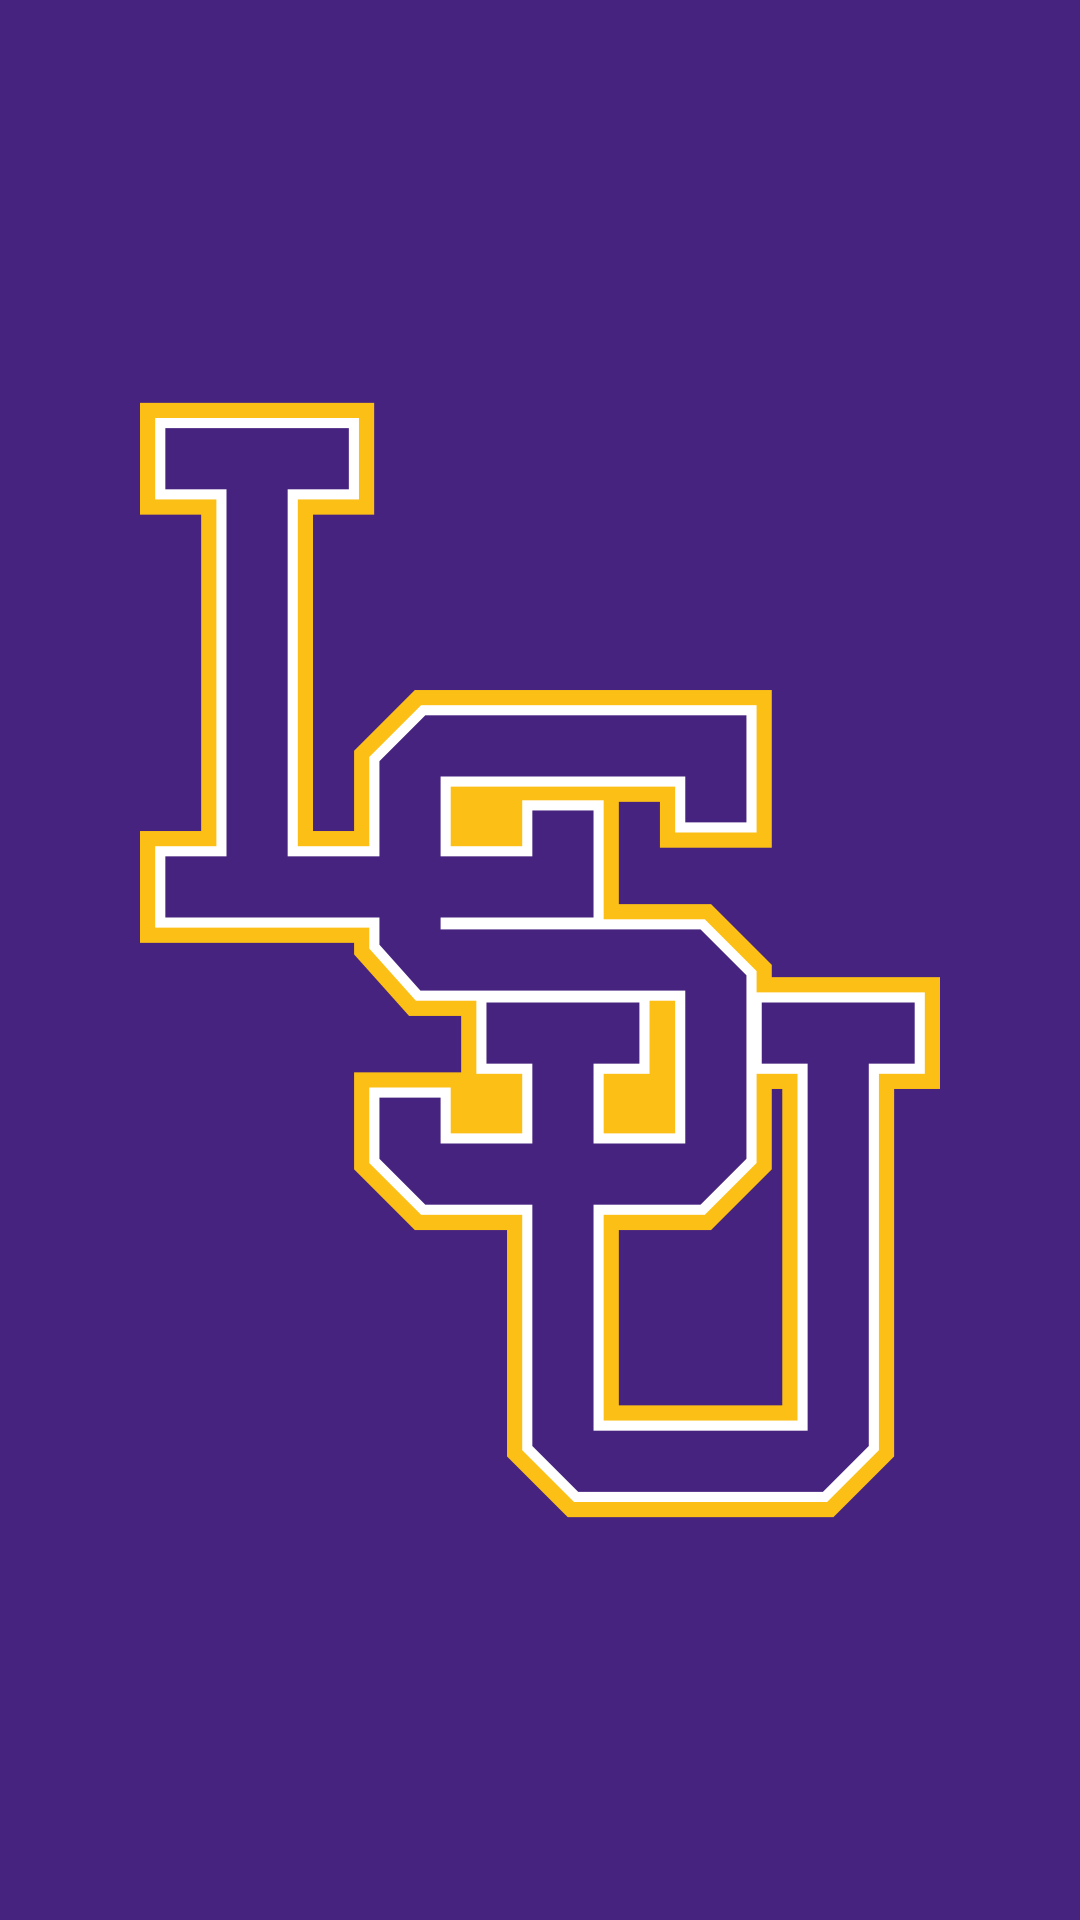 Download free lsu wallpapers for your mobile phone most - Lsu Football PNG Free